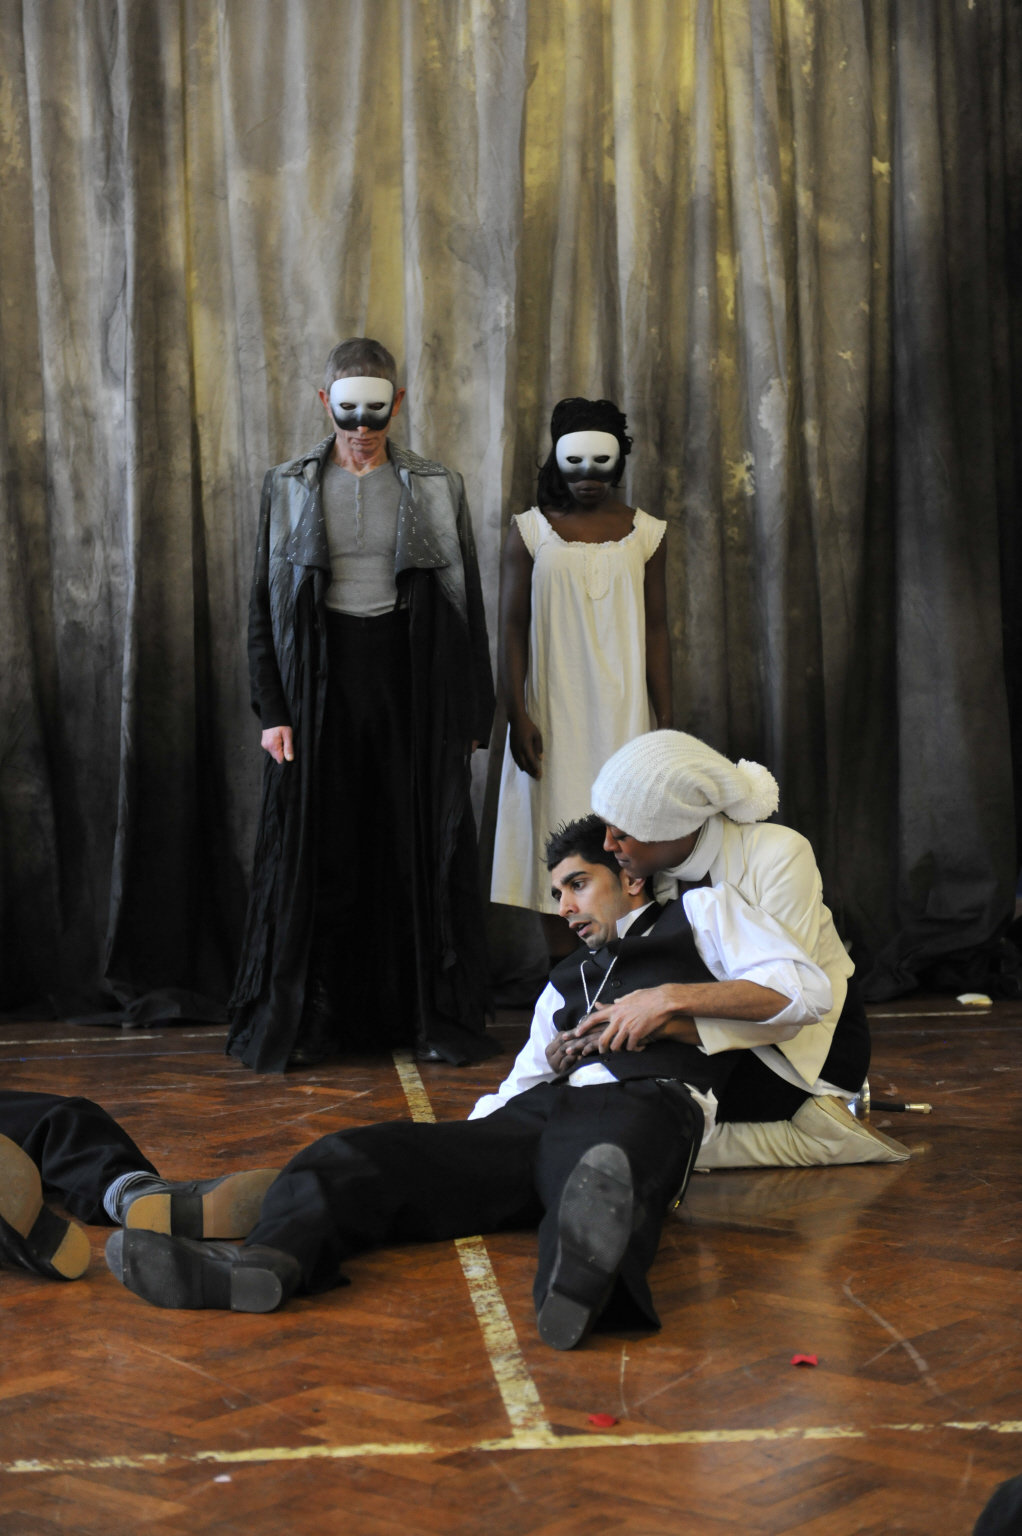 Hamlet dies, with the masked ghosts of his father and Ophelia behind him.